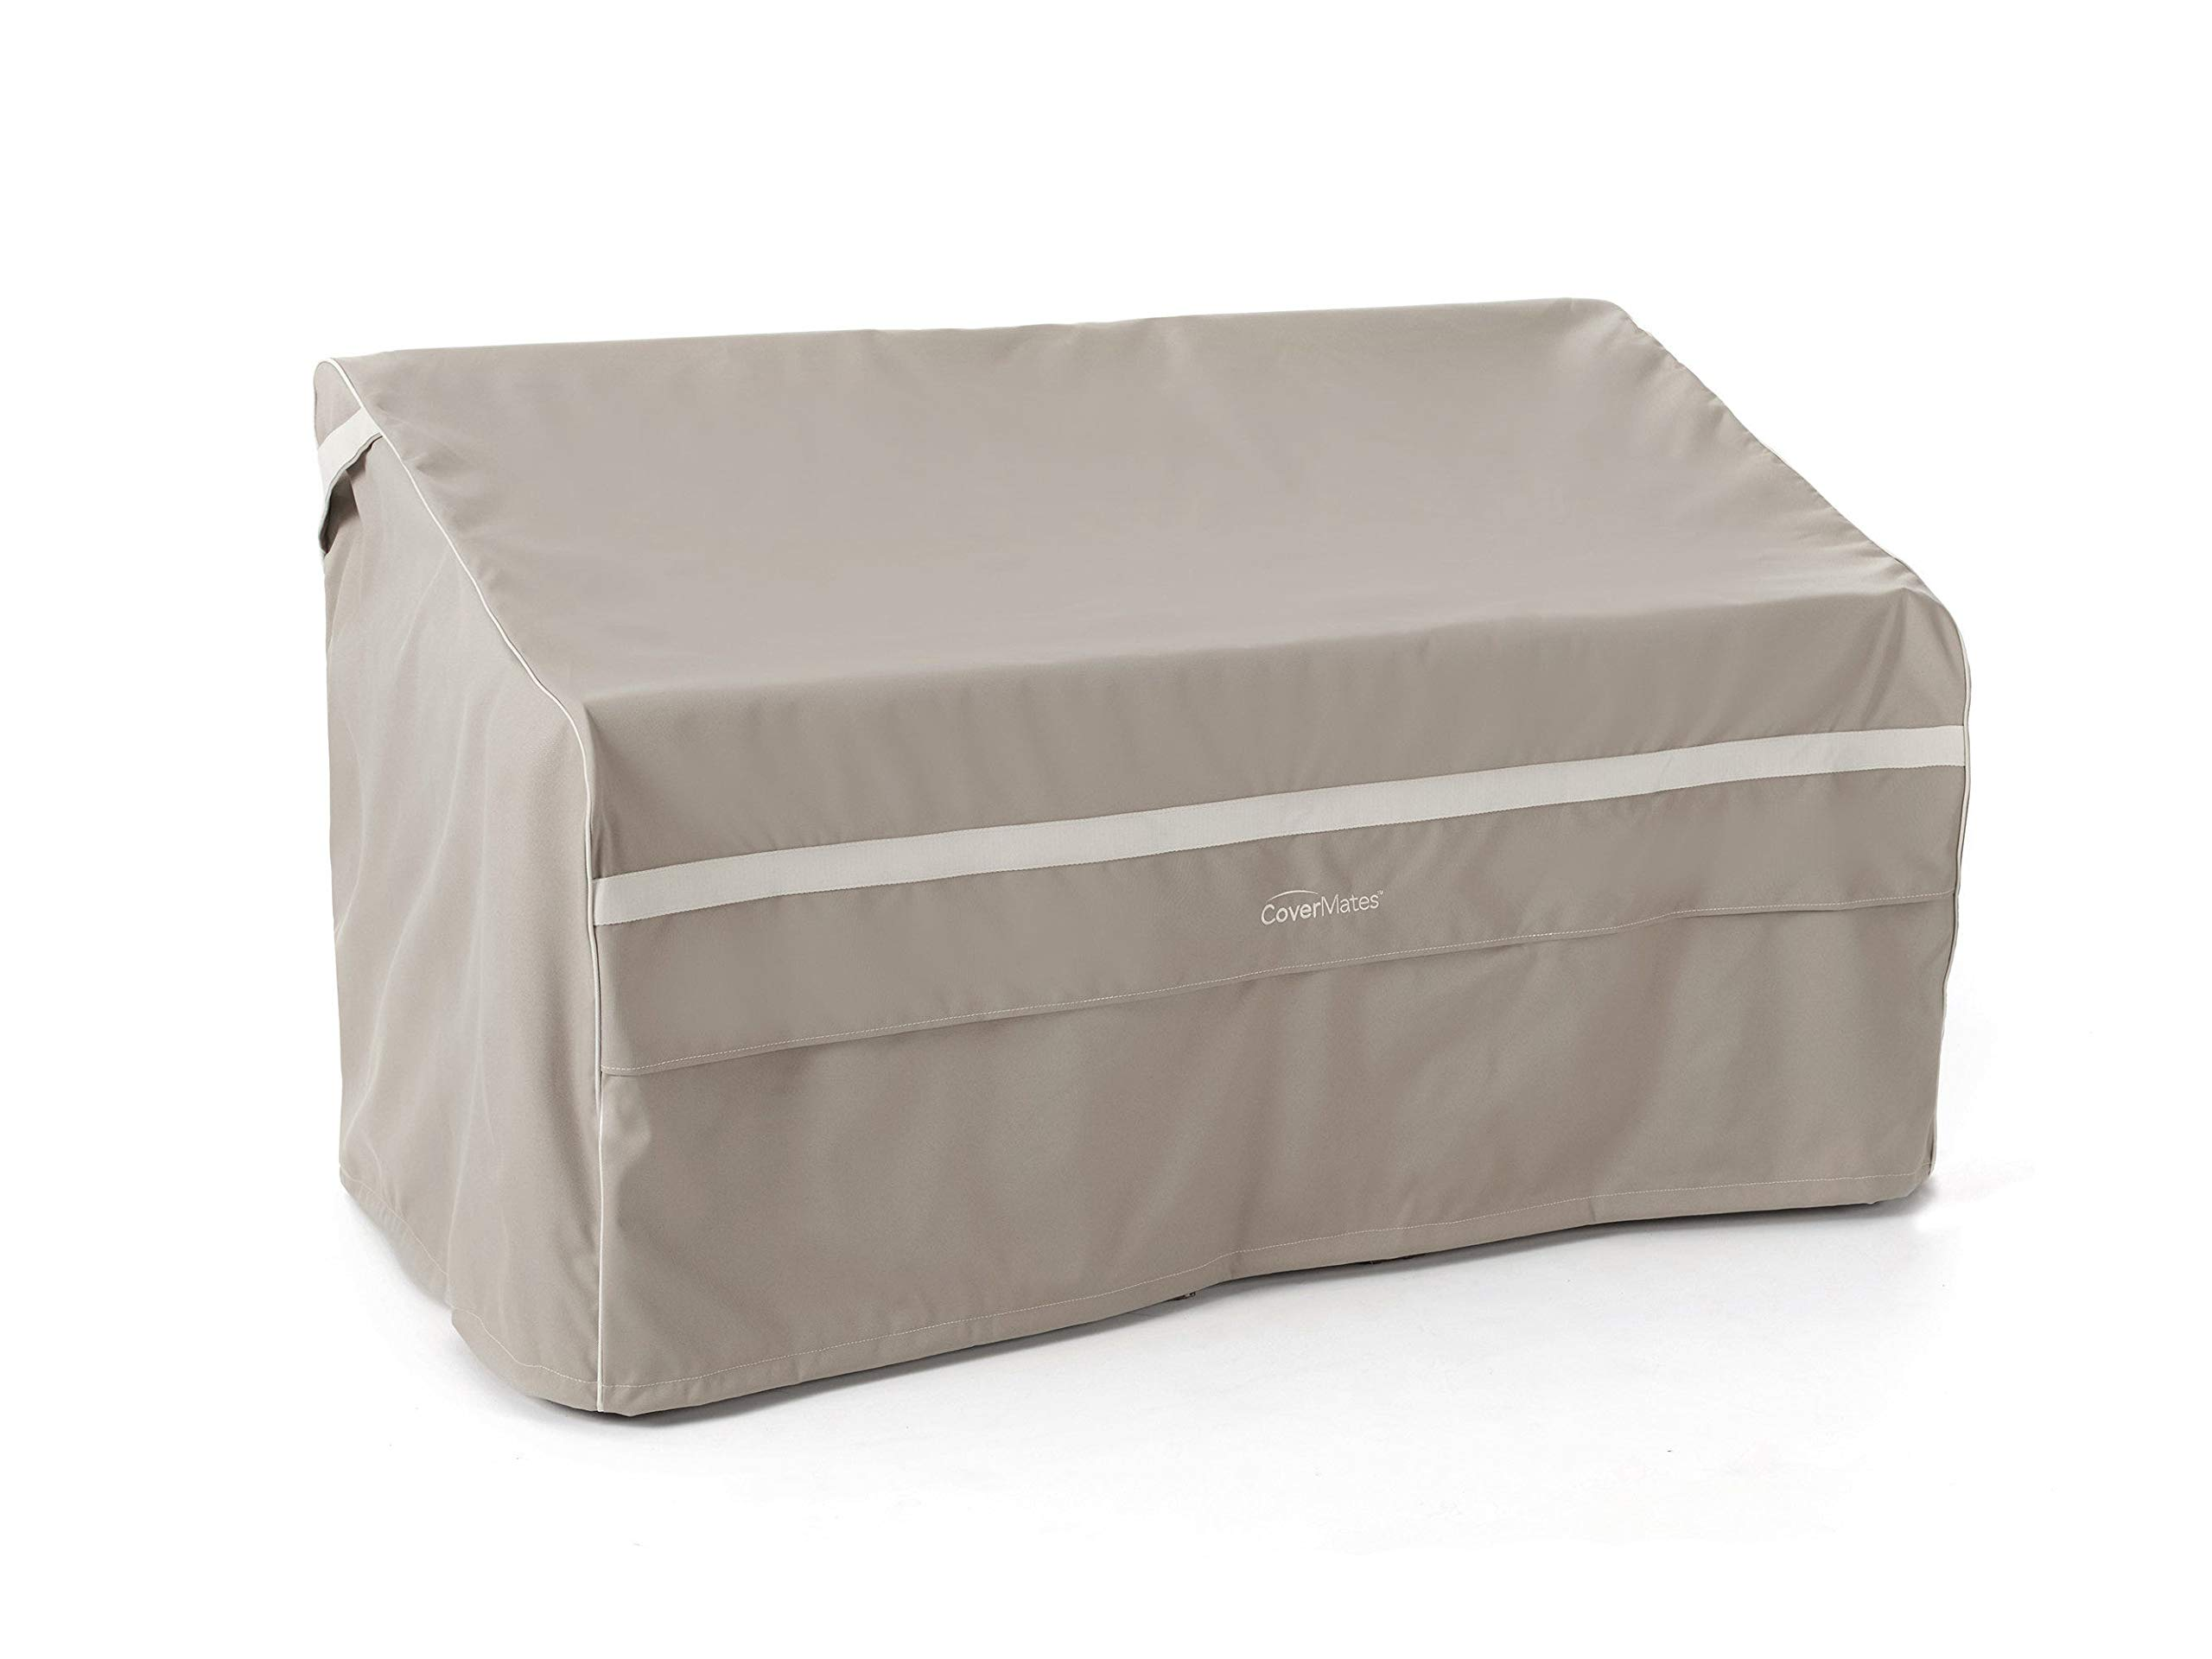 Covermates – Outdoor Patio Loveseat Cover – Heavy Duty Material - Water and Weather Resistant - Patio Furniture Covers - Clay